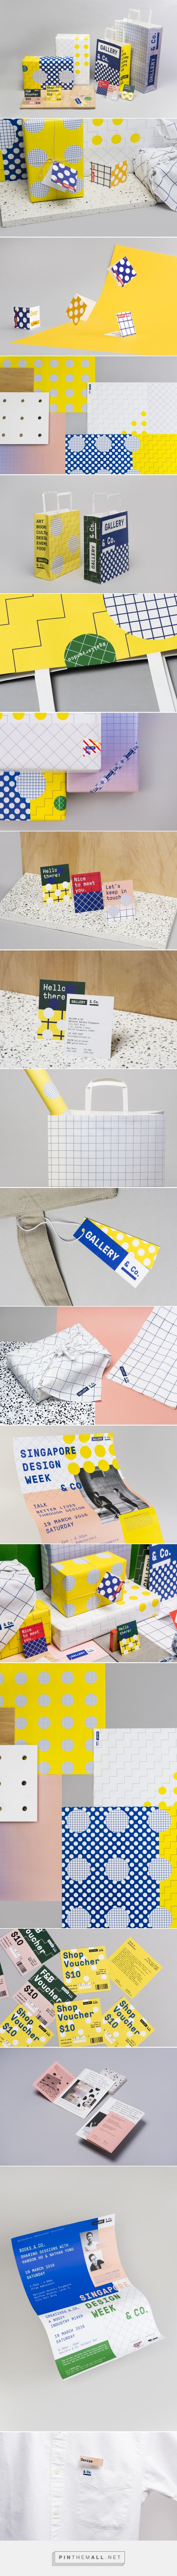 Gallery & Co. Branding | Foreign Policy Design Group... - a grouped images picture - Pin Them All